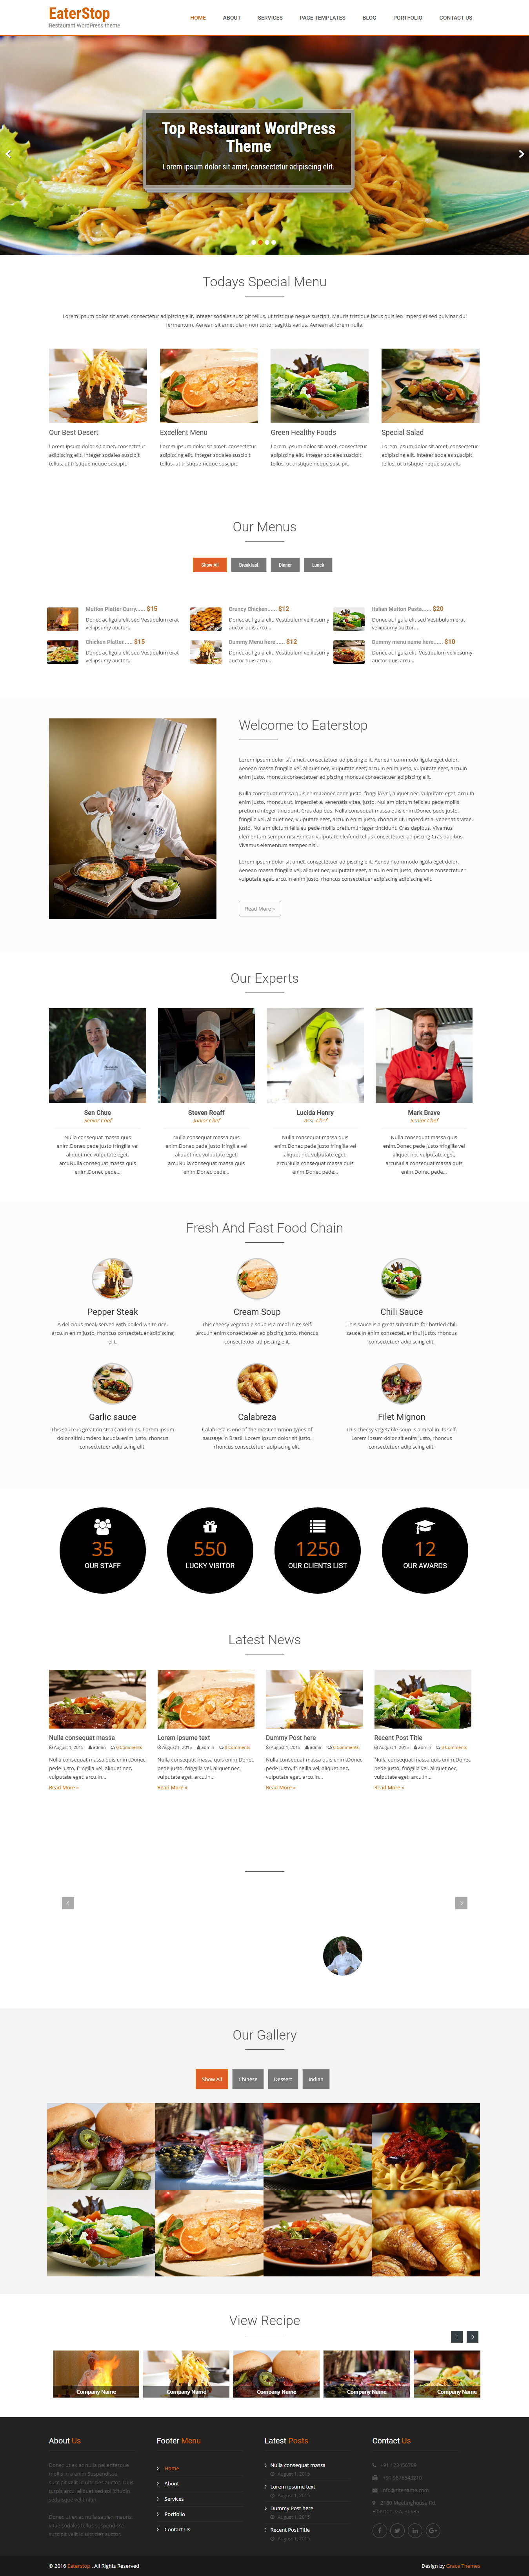 EaterStop Lite - Best Free Bar and Pub WordPress Theme